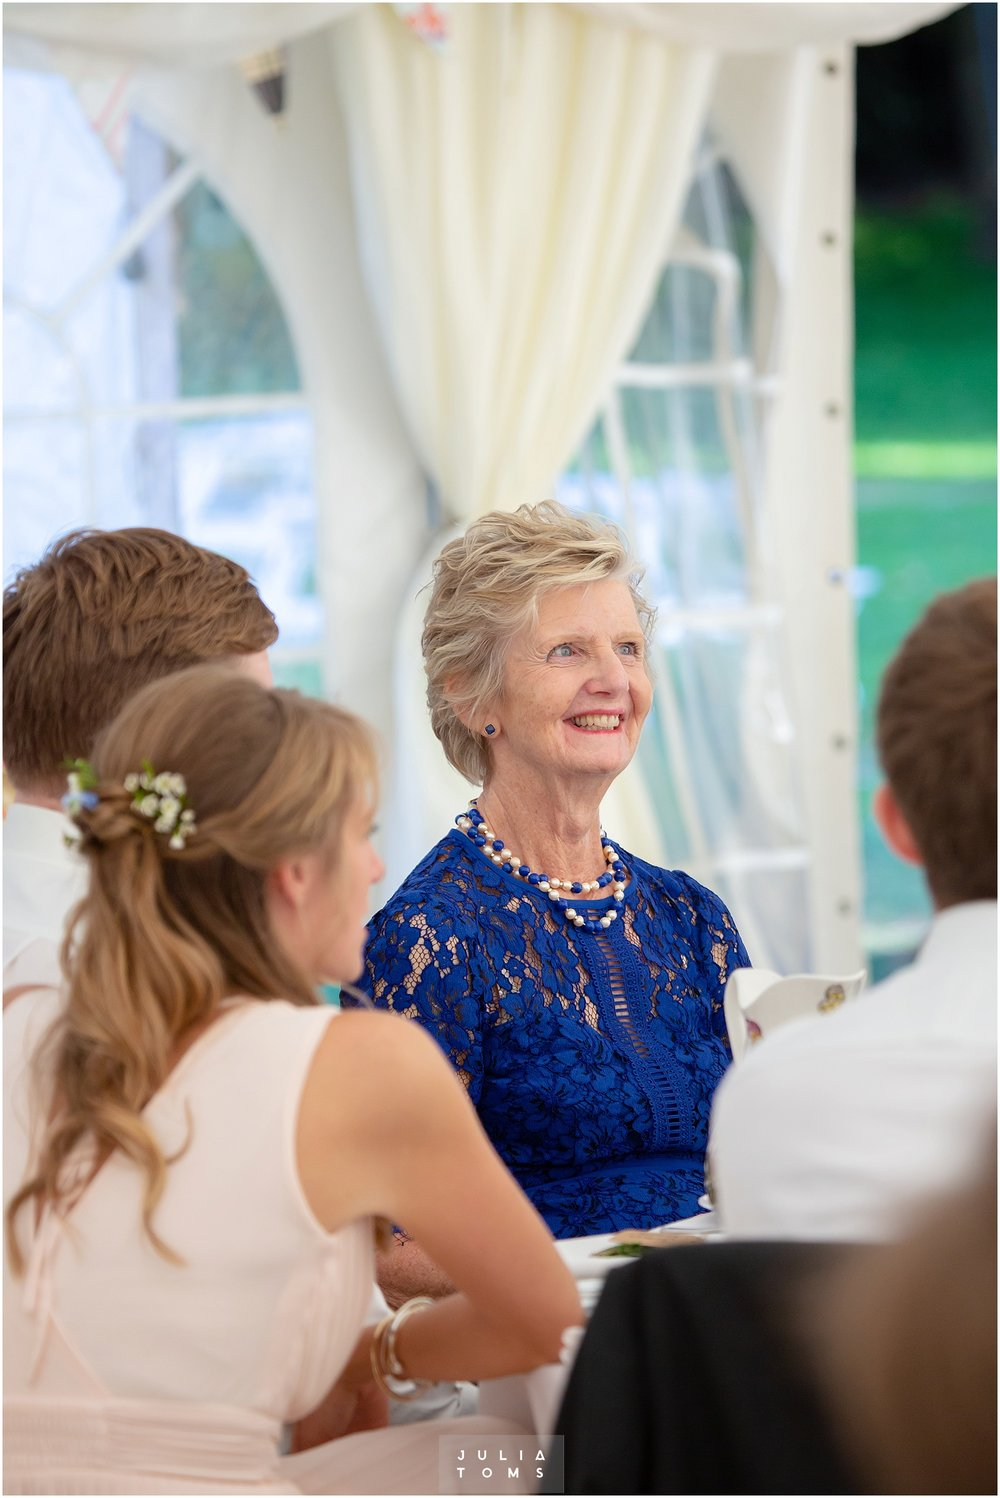 westsussex_wedding_photographer_westdean_115.jpg